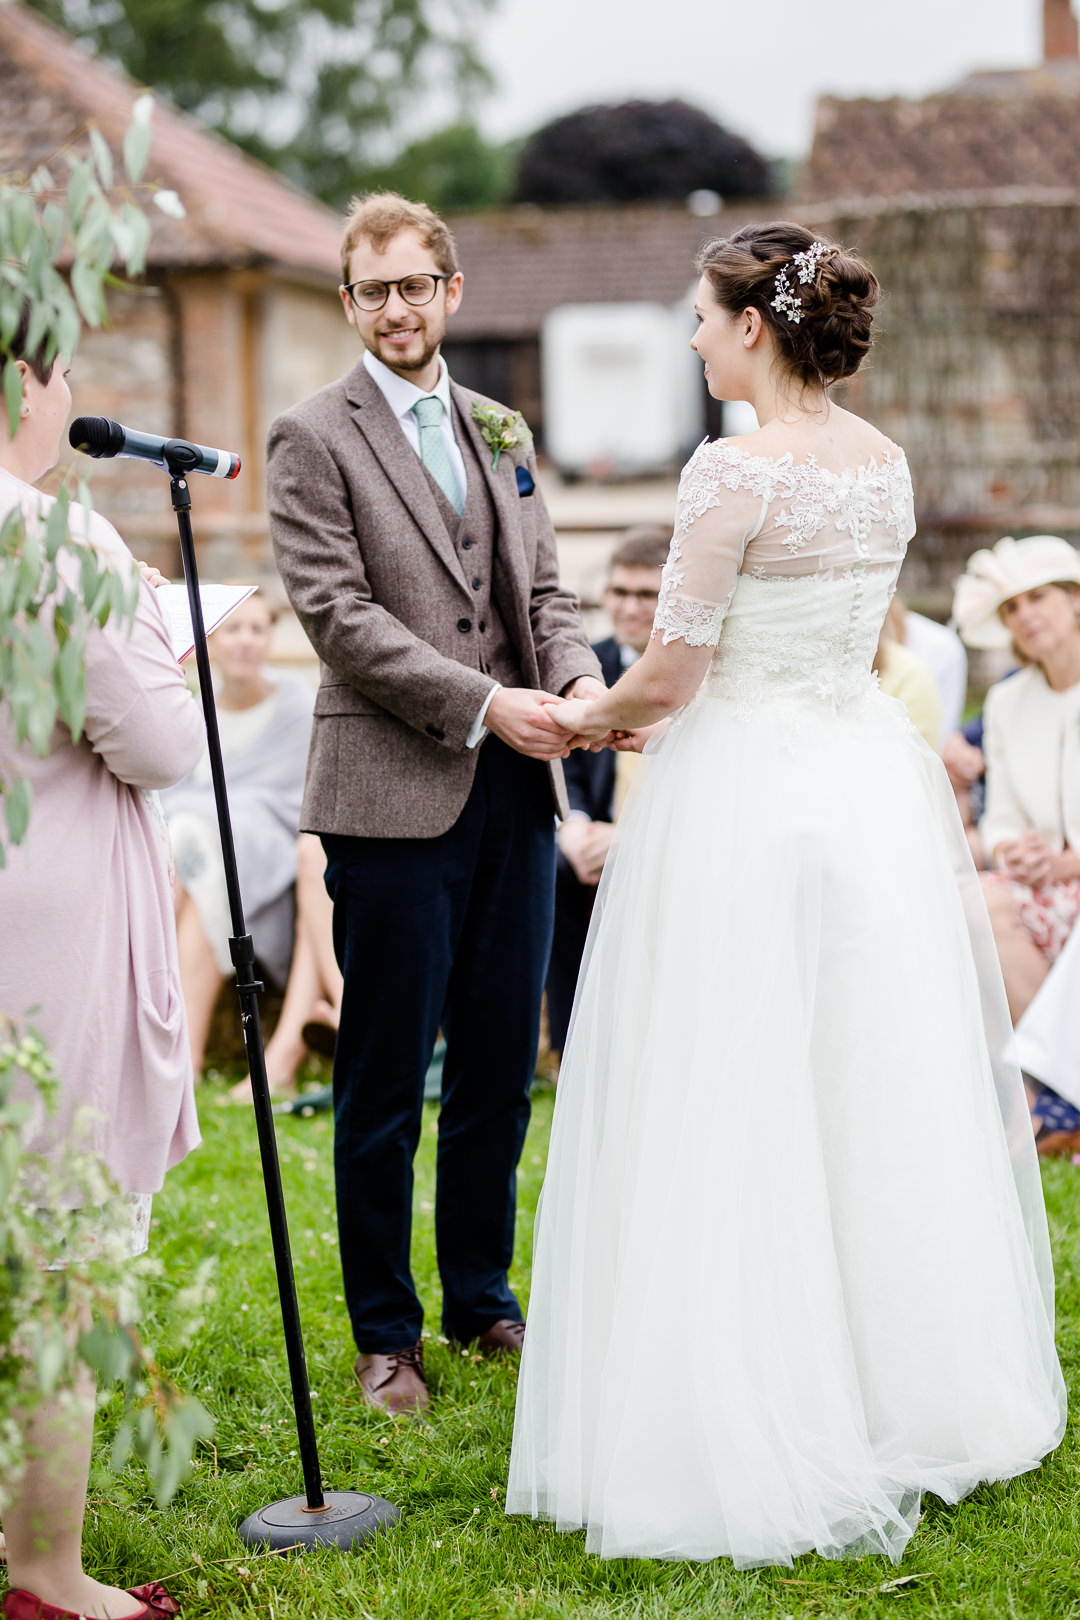 bride and groom during vows in an outdoor wedding ceremony